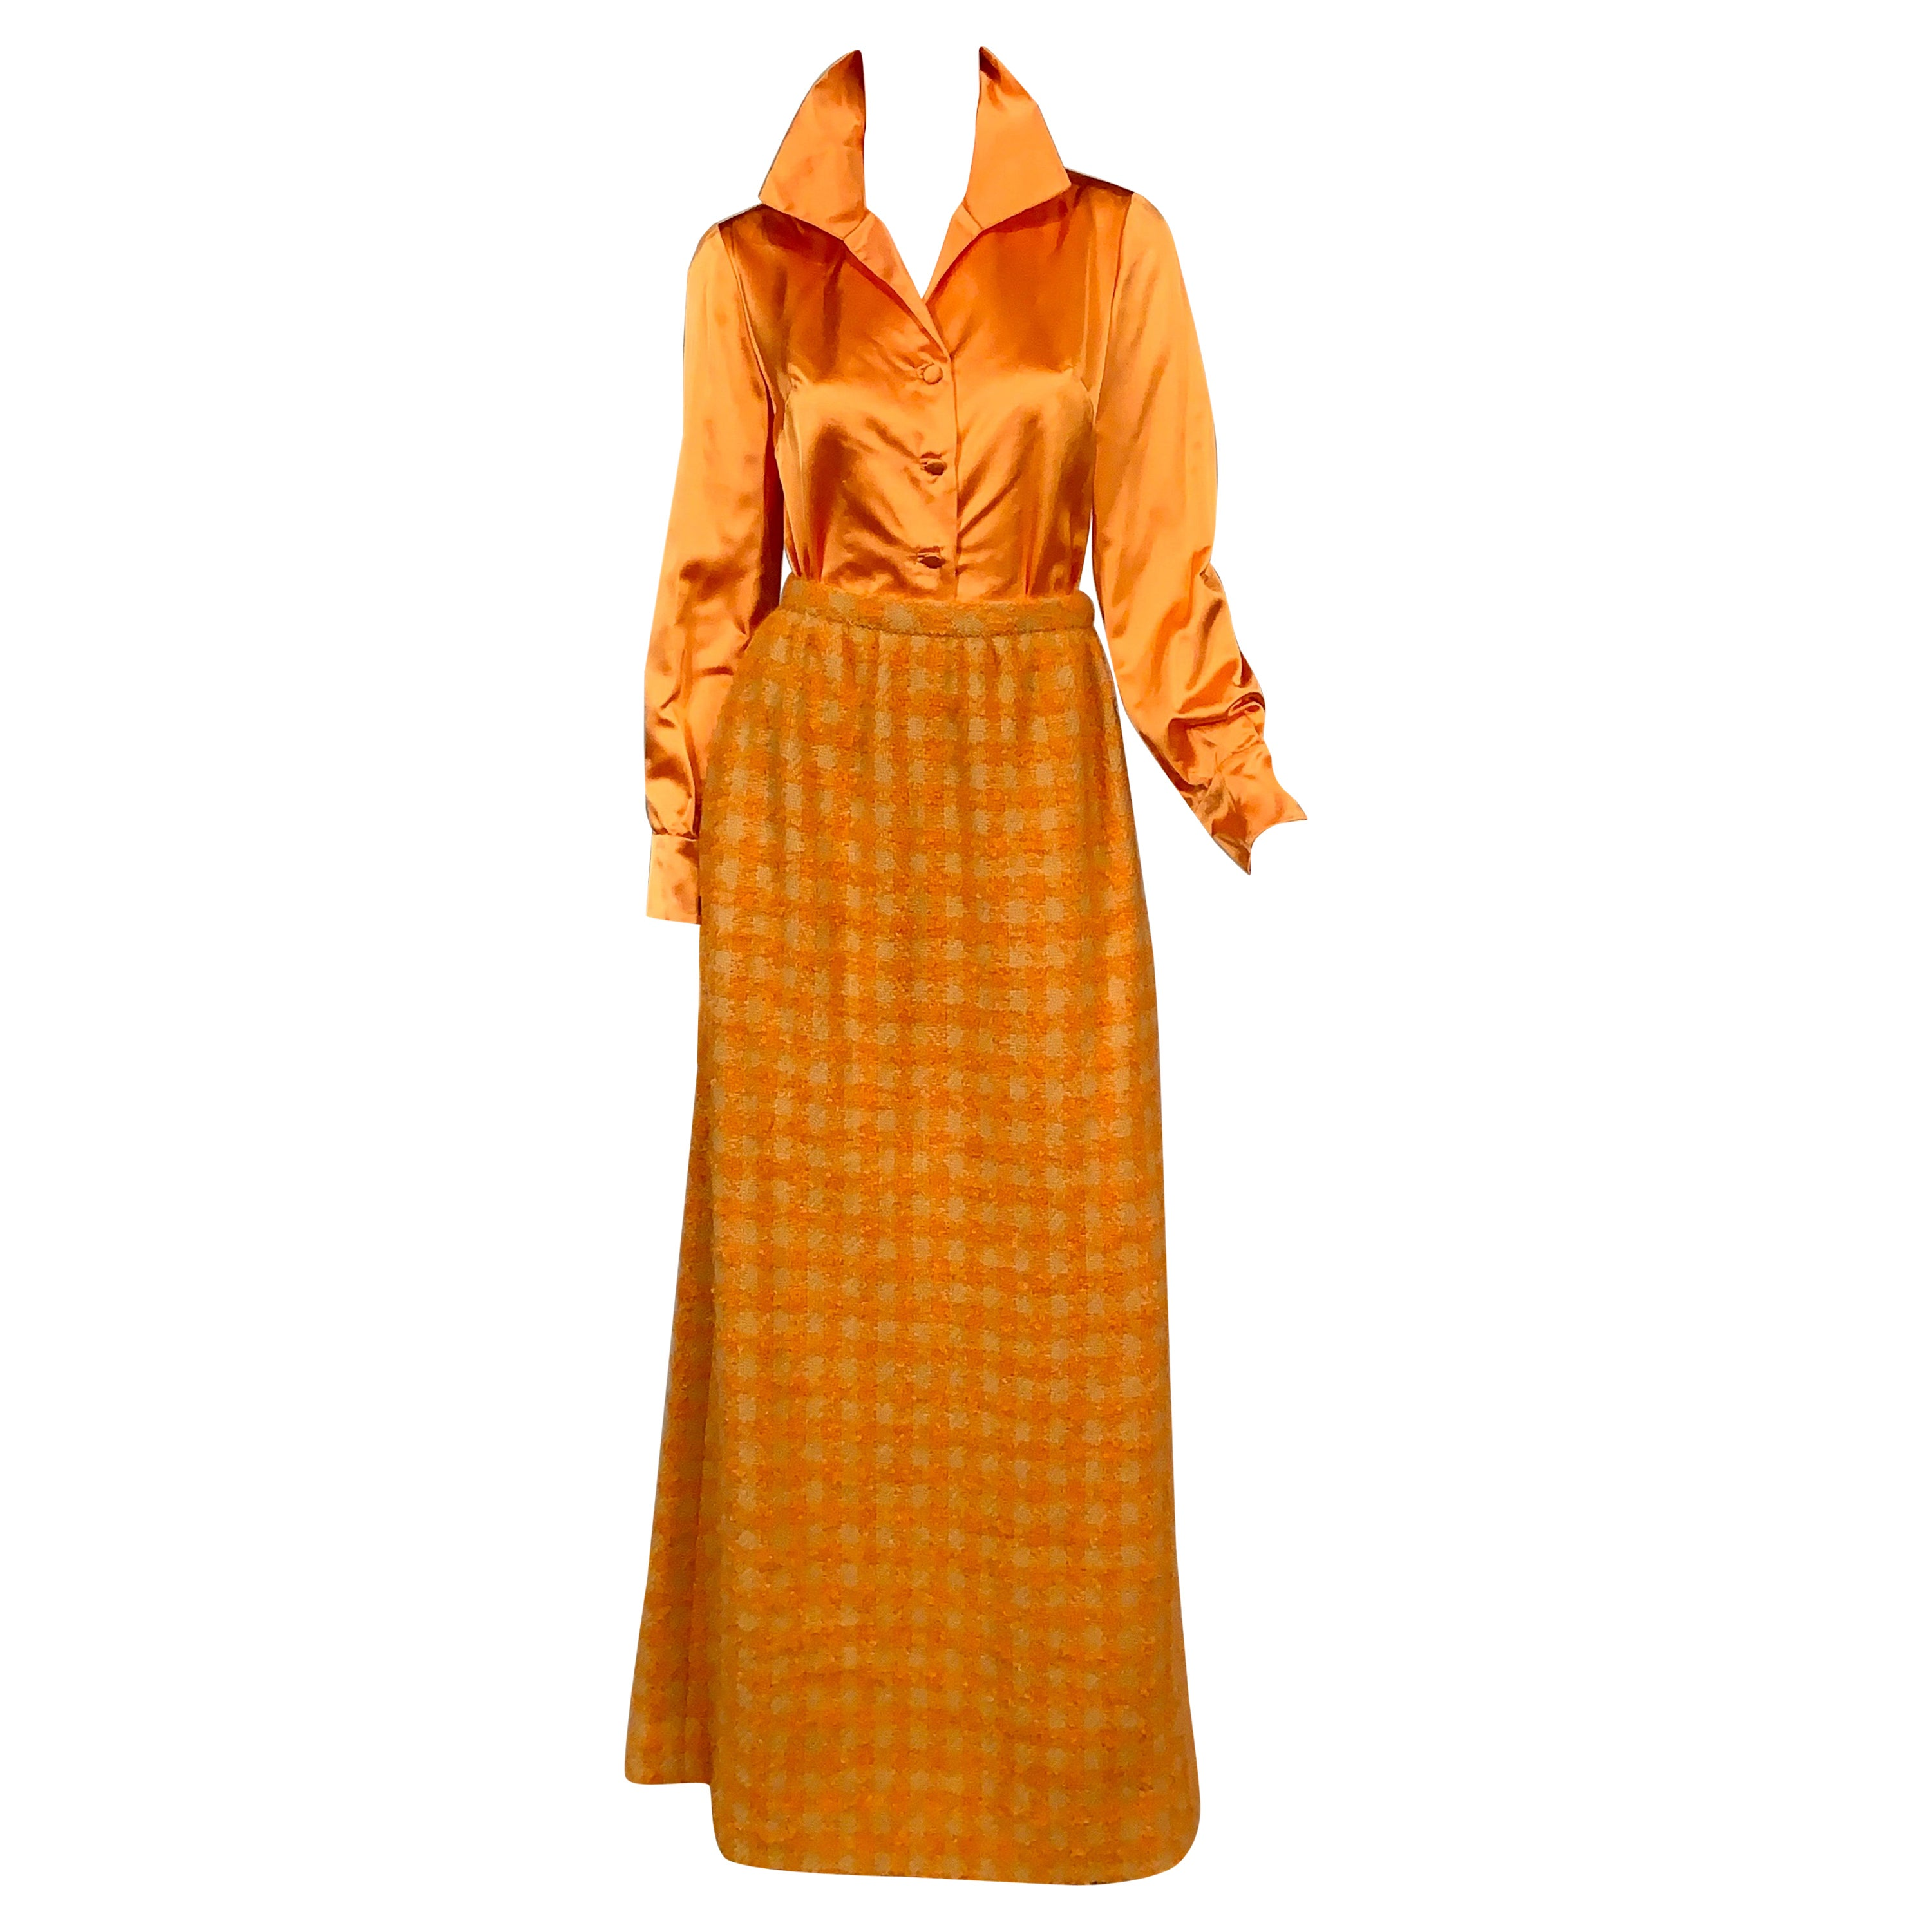 Sybil Connolly Haute Couture Silk Satin Blouse and Hand Loomed Irish Wool Skirt